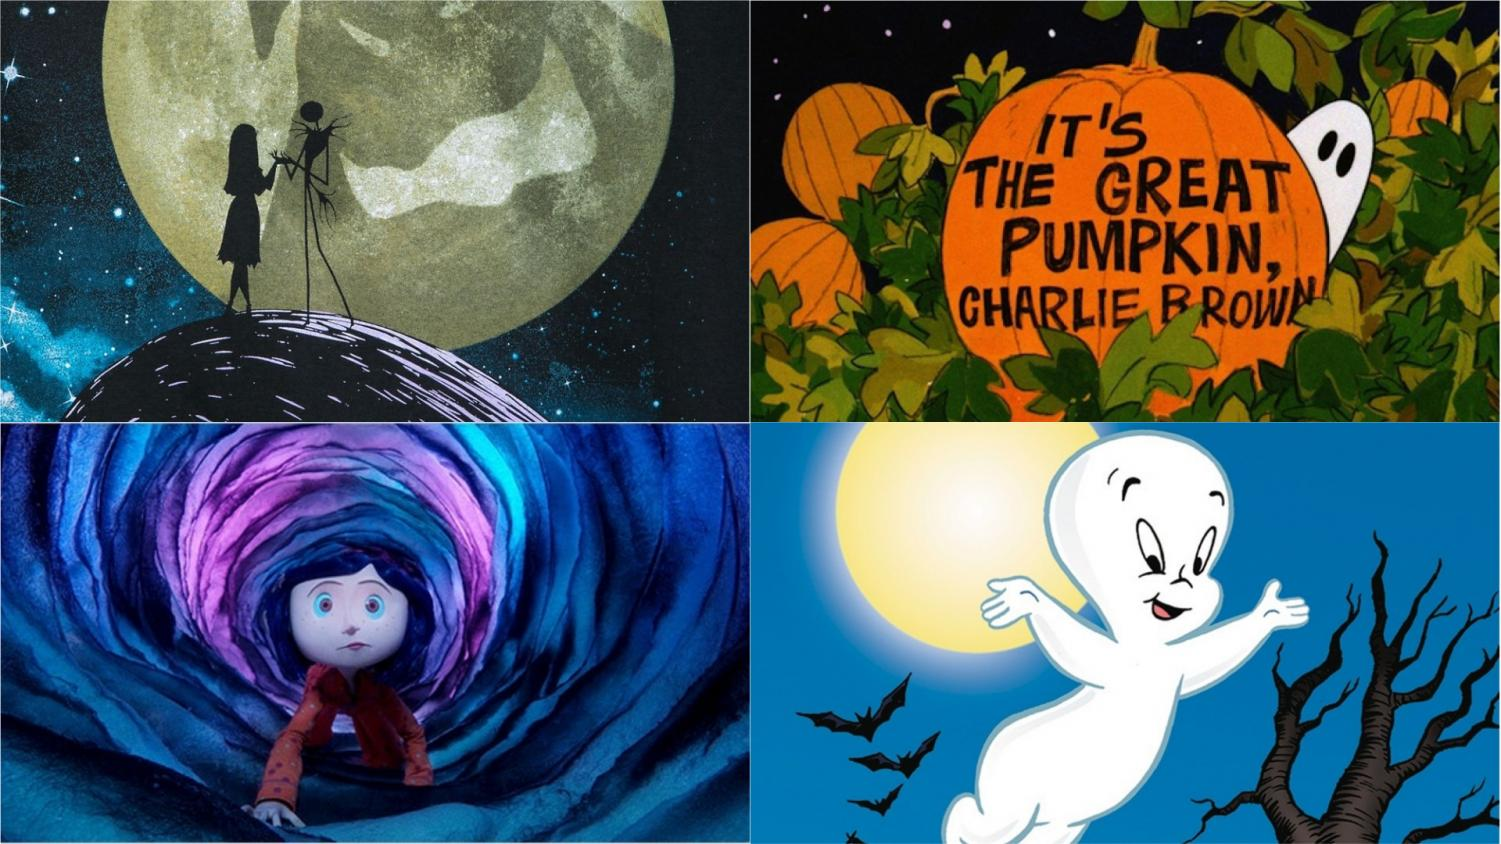 There are many movies to be enjoyed on Halloween ranging from fun for families to horror thrillers.